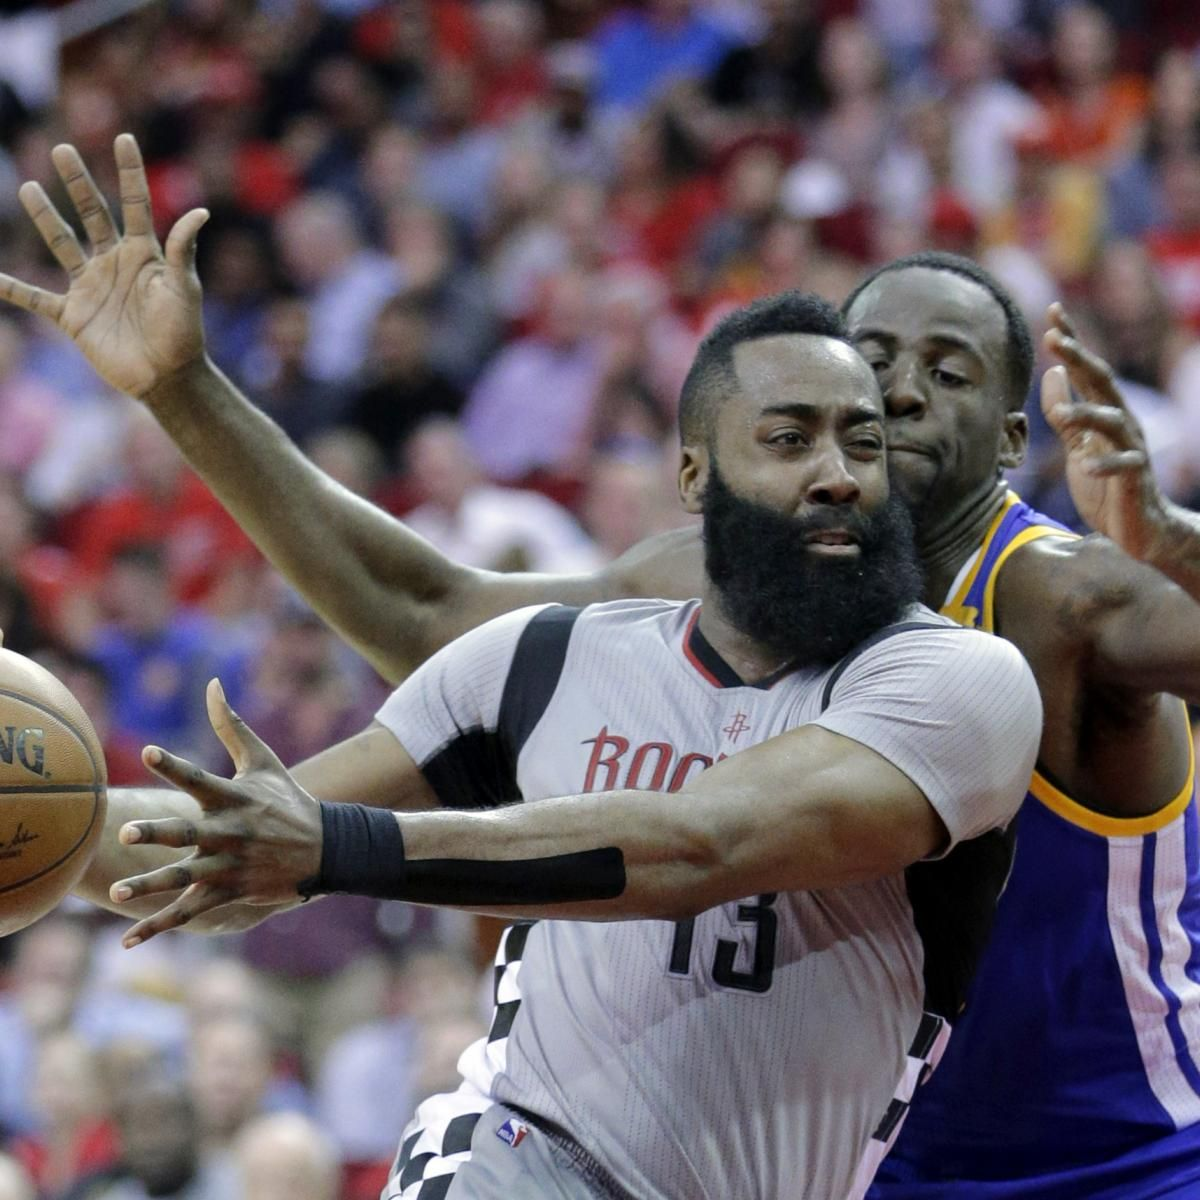 Draymond Green Admits to Punching James Harden in Injured Wrist | Bleacher Report